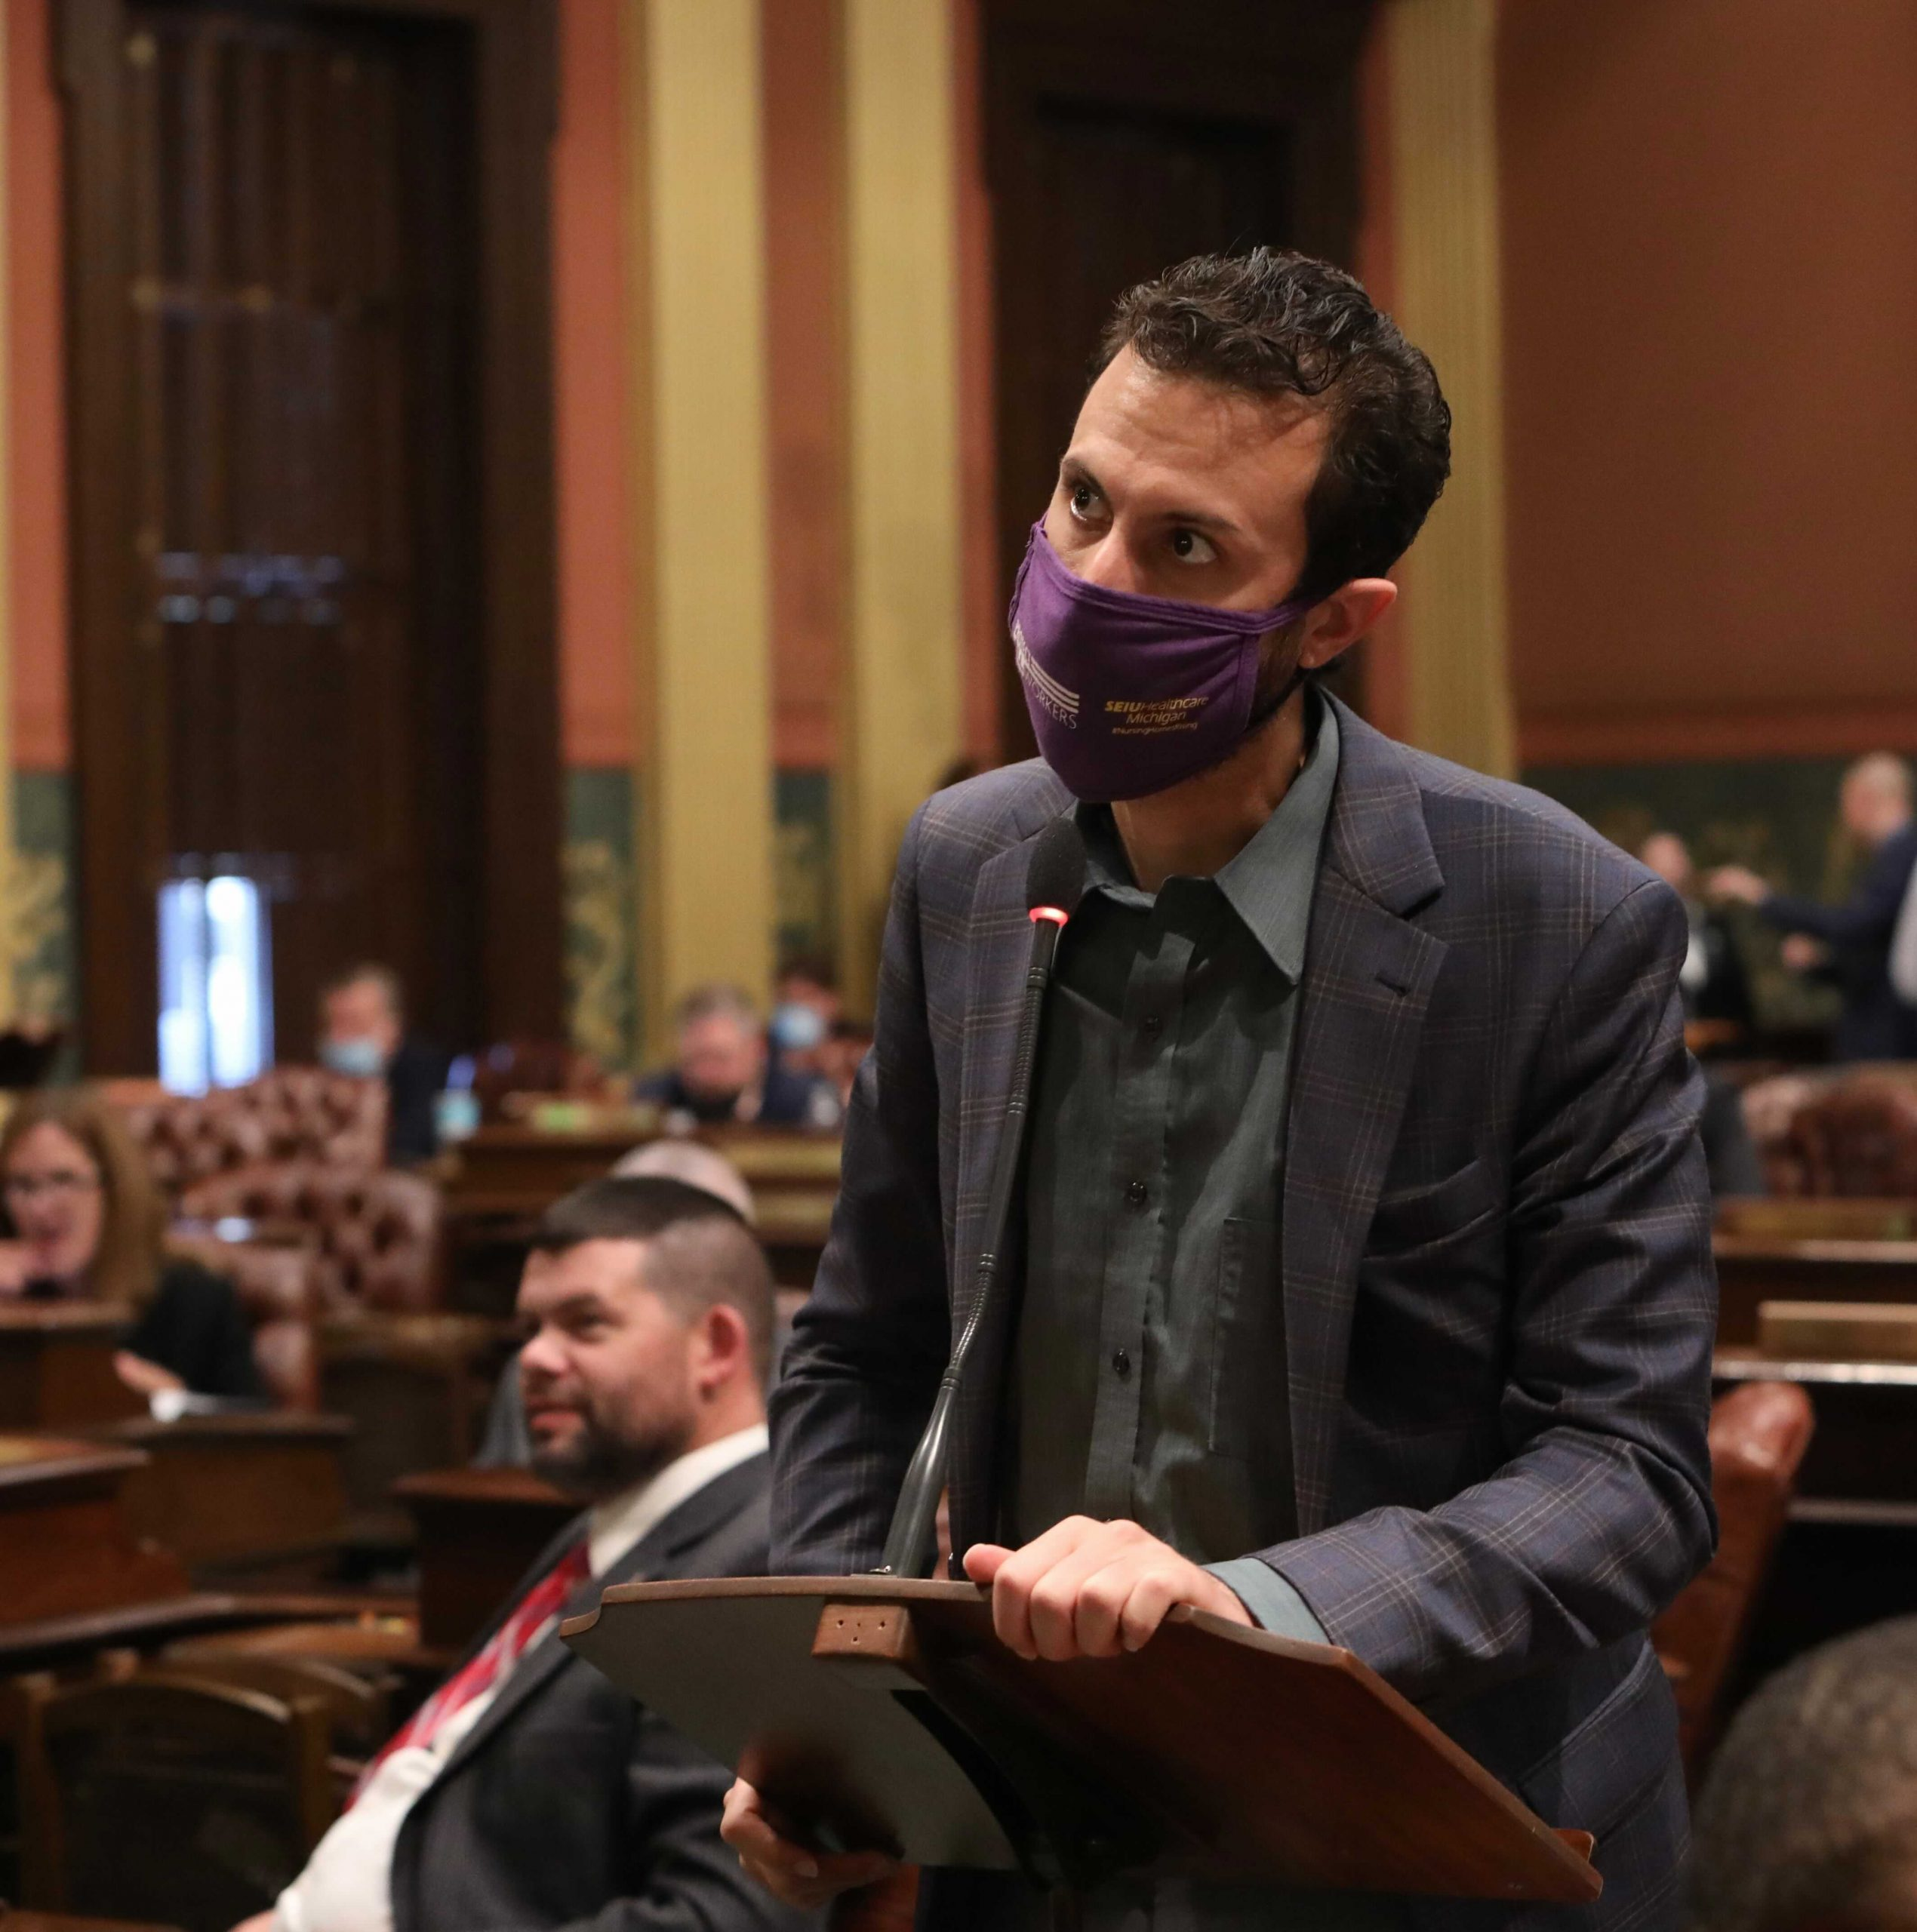 State Rep. Yousef Rabhi (D-Ann Arbor) joining other House Dems in breaking required dress code to protest Republican refusal to require masks on the House floor at the Capitol in Lansing on Oct. 13, 2020.